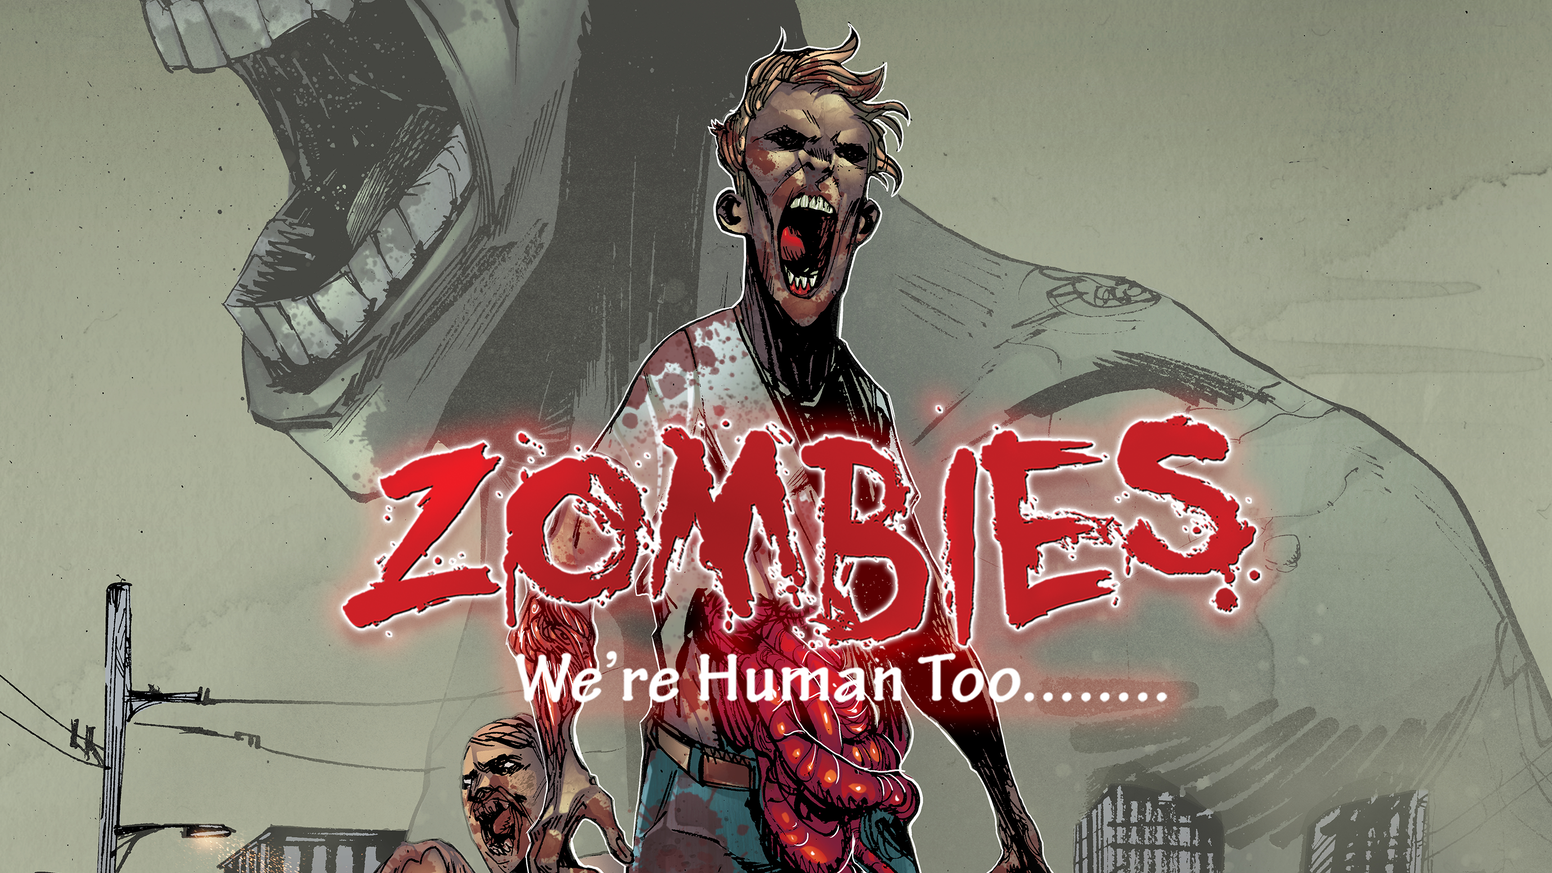 A 100 page Graphic Novel telling stories about zombies before they turned into zombies.